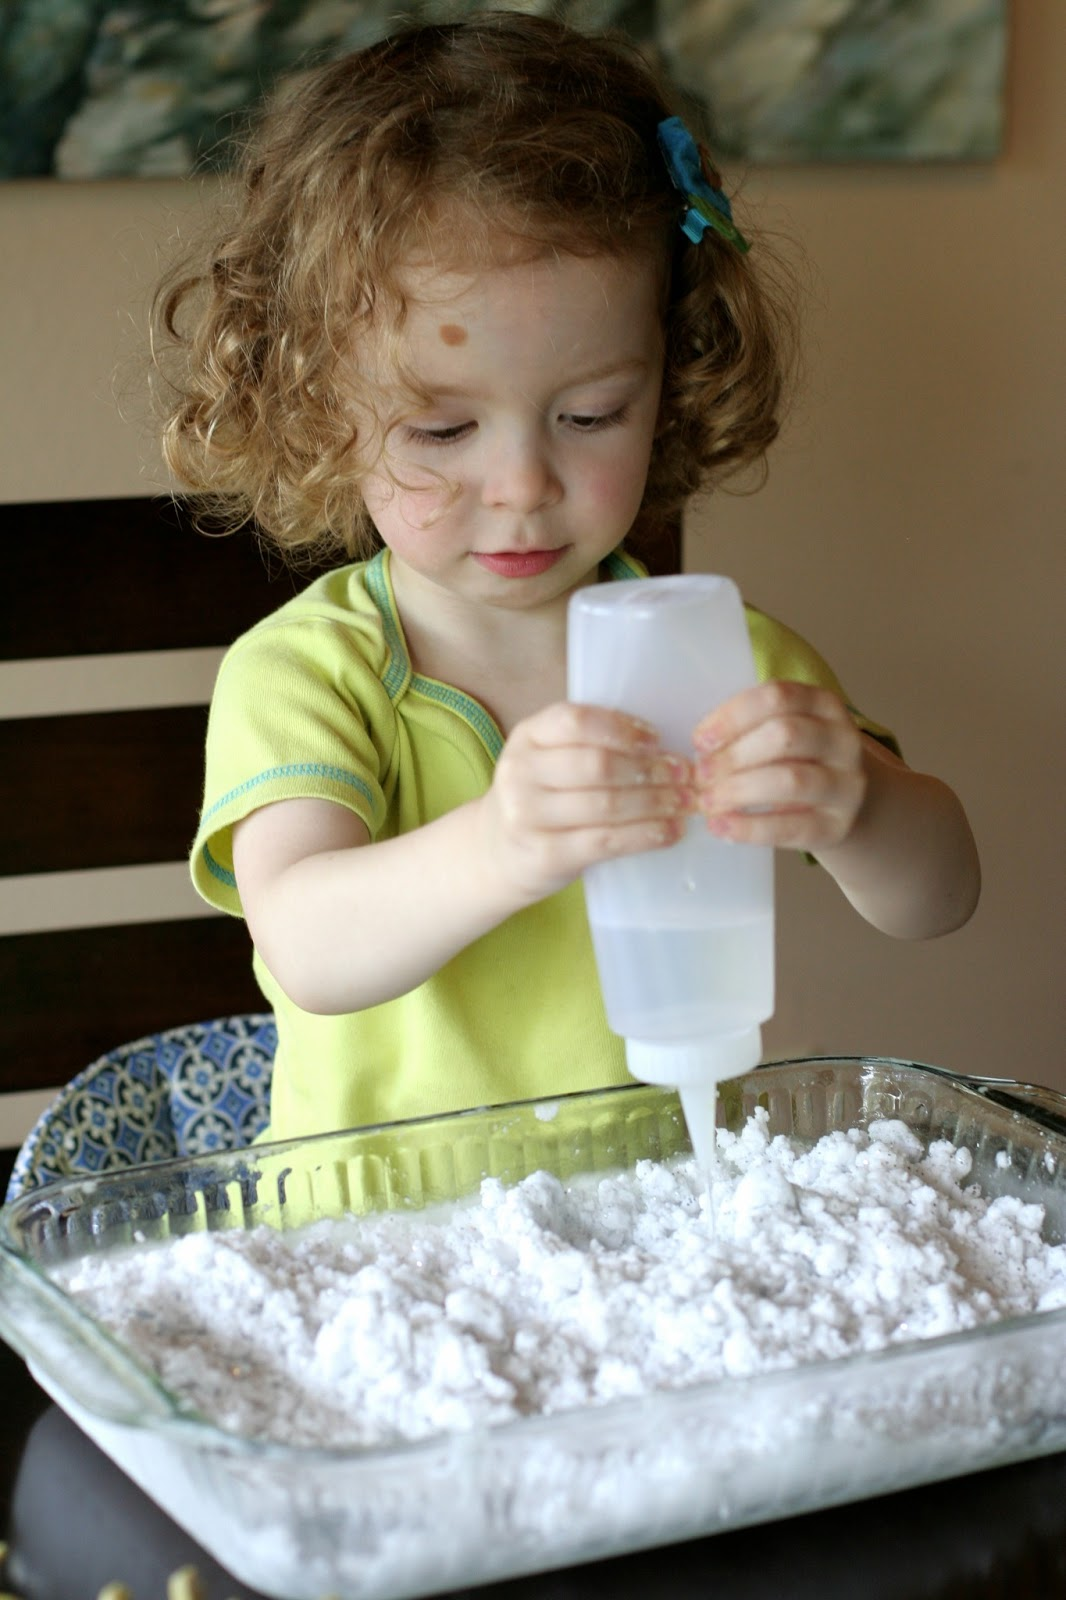 Frozen Sensory Snow - Easy, cheap (cost around one dollar!), and the icy cold lasted for TWO hours while we played!  Perfect for keeping cool this summer from Fun at Home with Kids